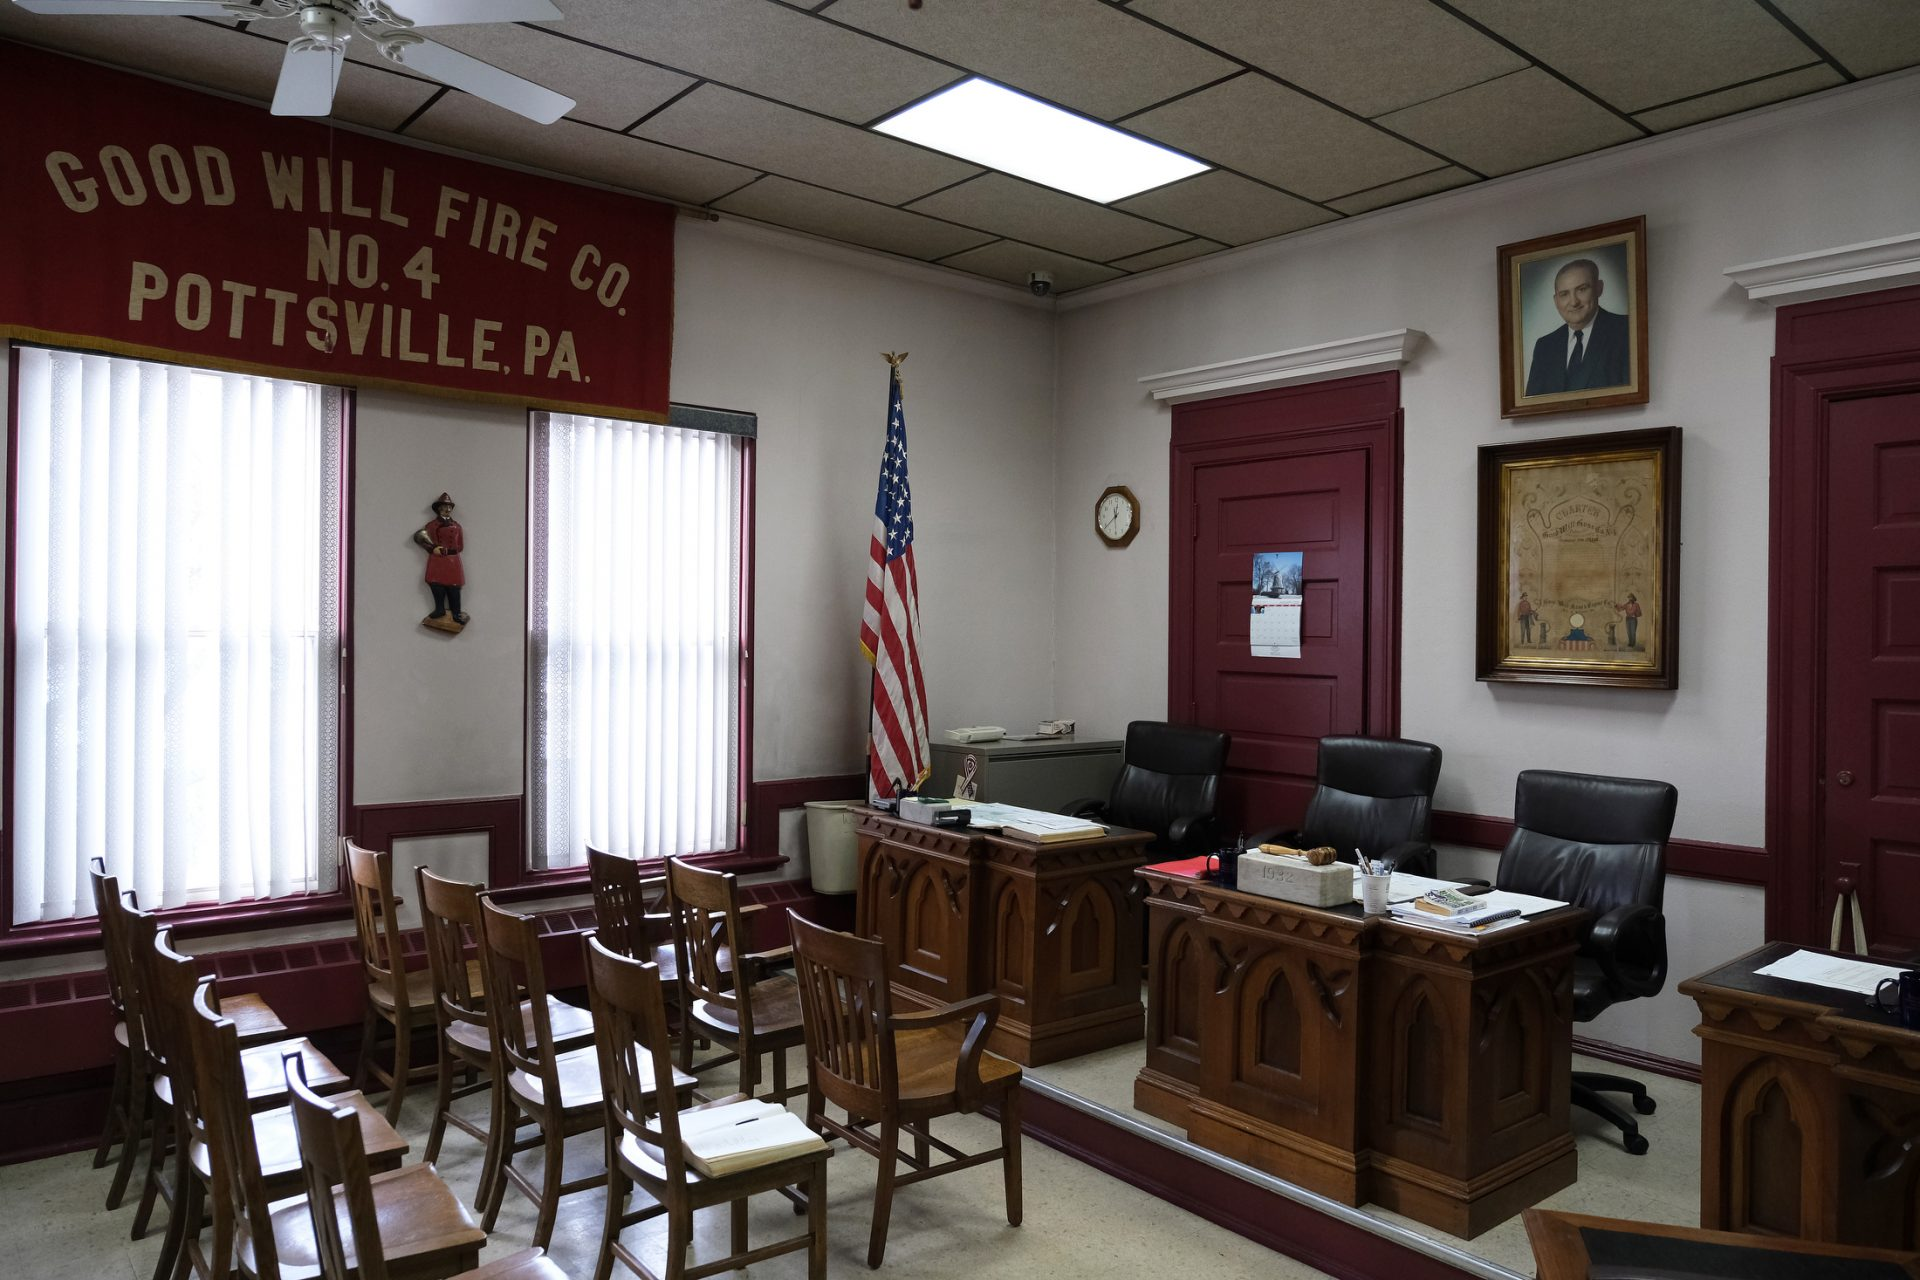 A look at the meeting room Jan. 16, 2020, at Good Will Fire Company No. 4 in Pottsville, Pennsylvania.